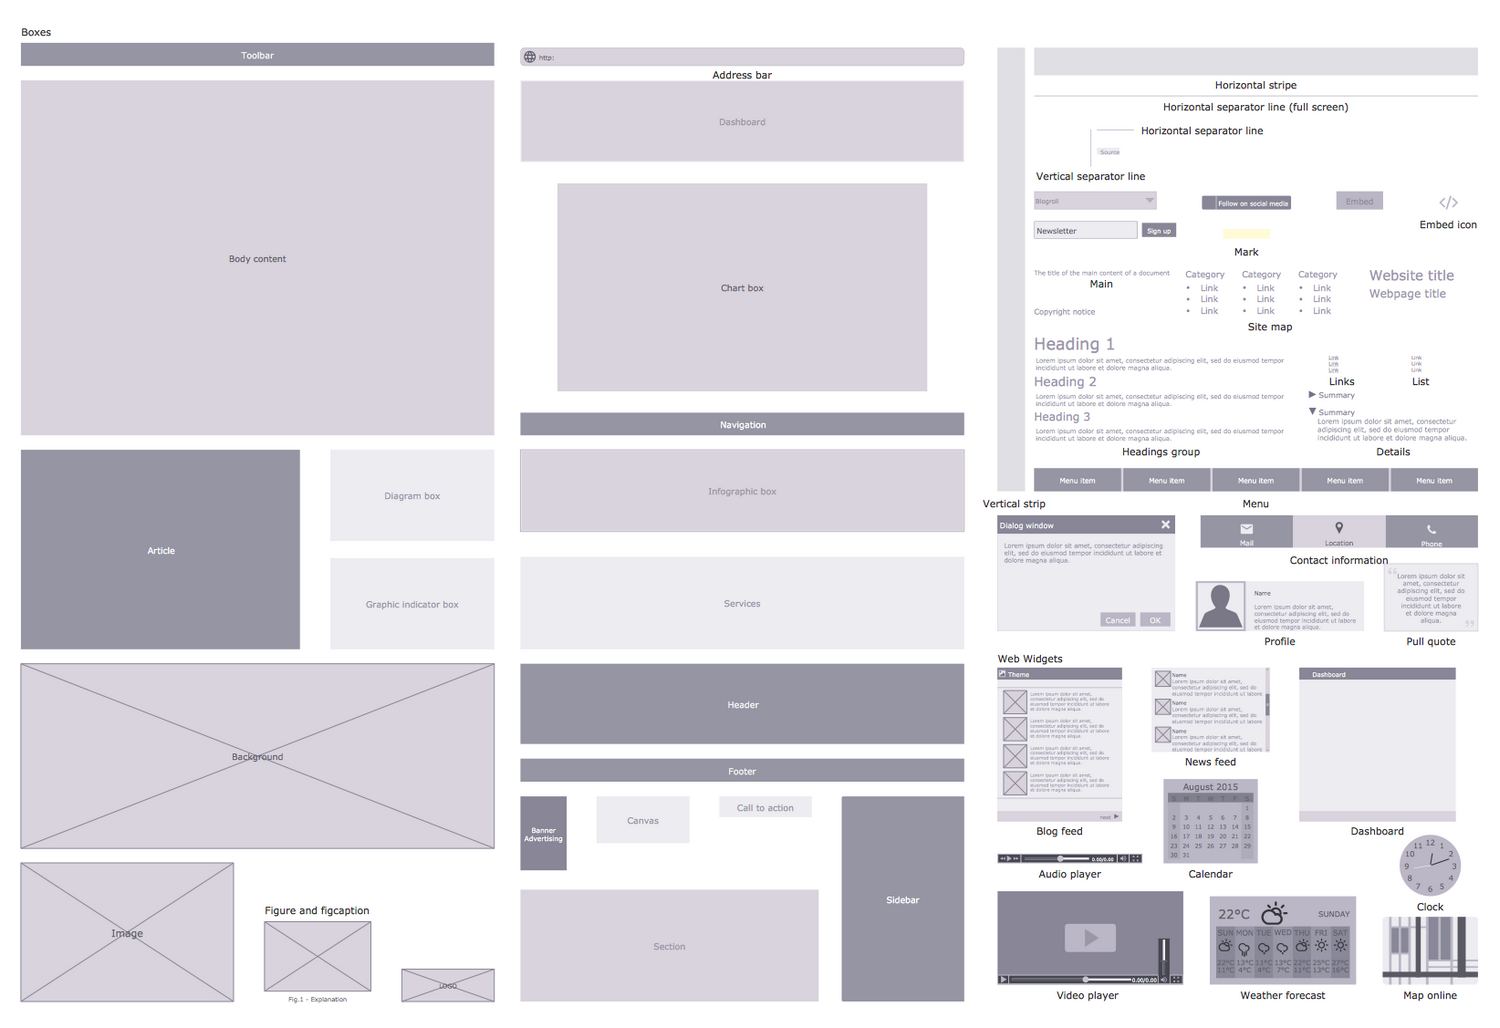 Website Wireframe Solution | ConceptDraw.com